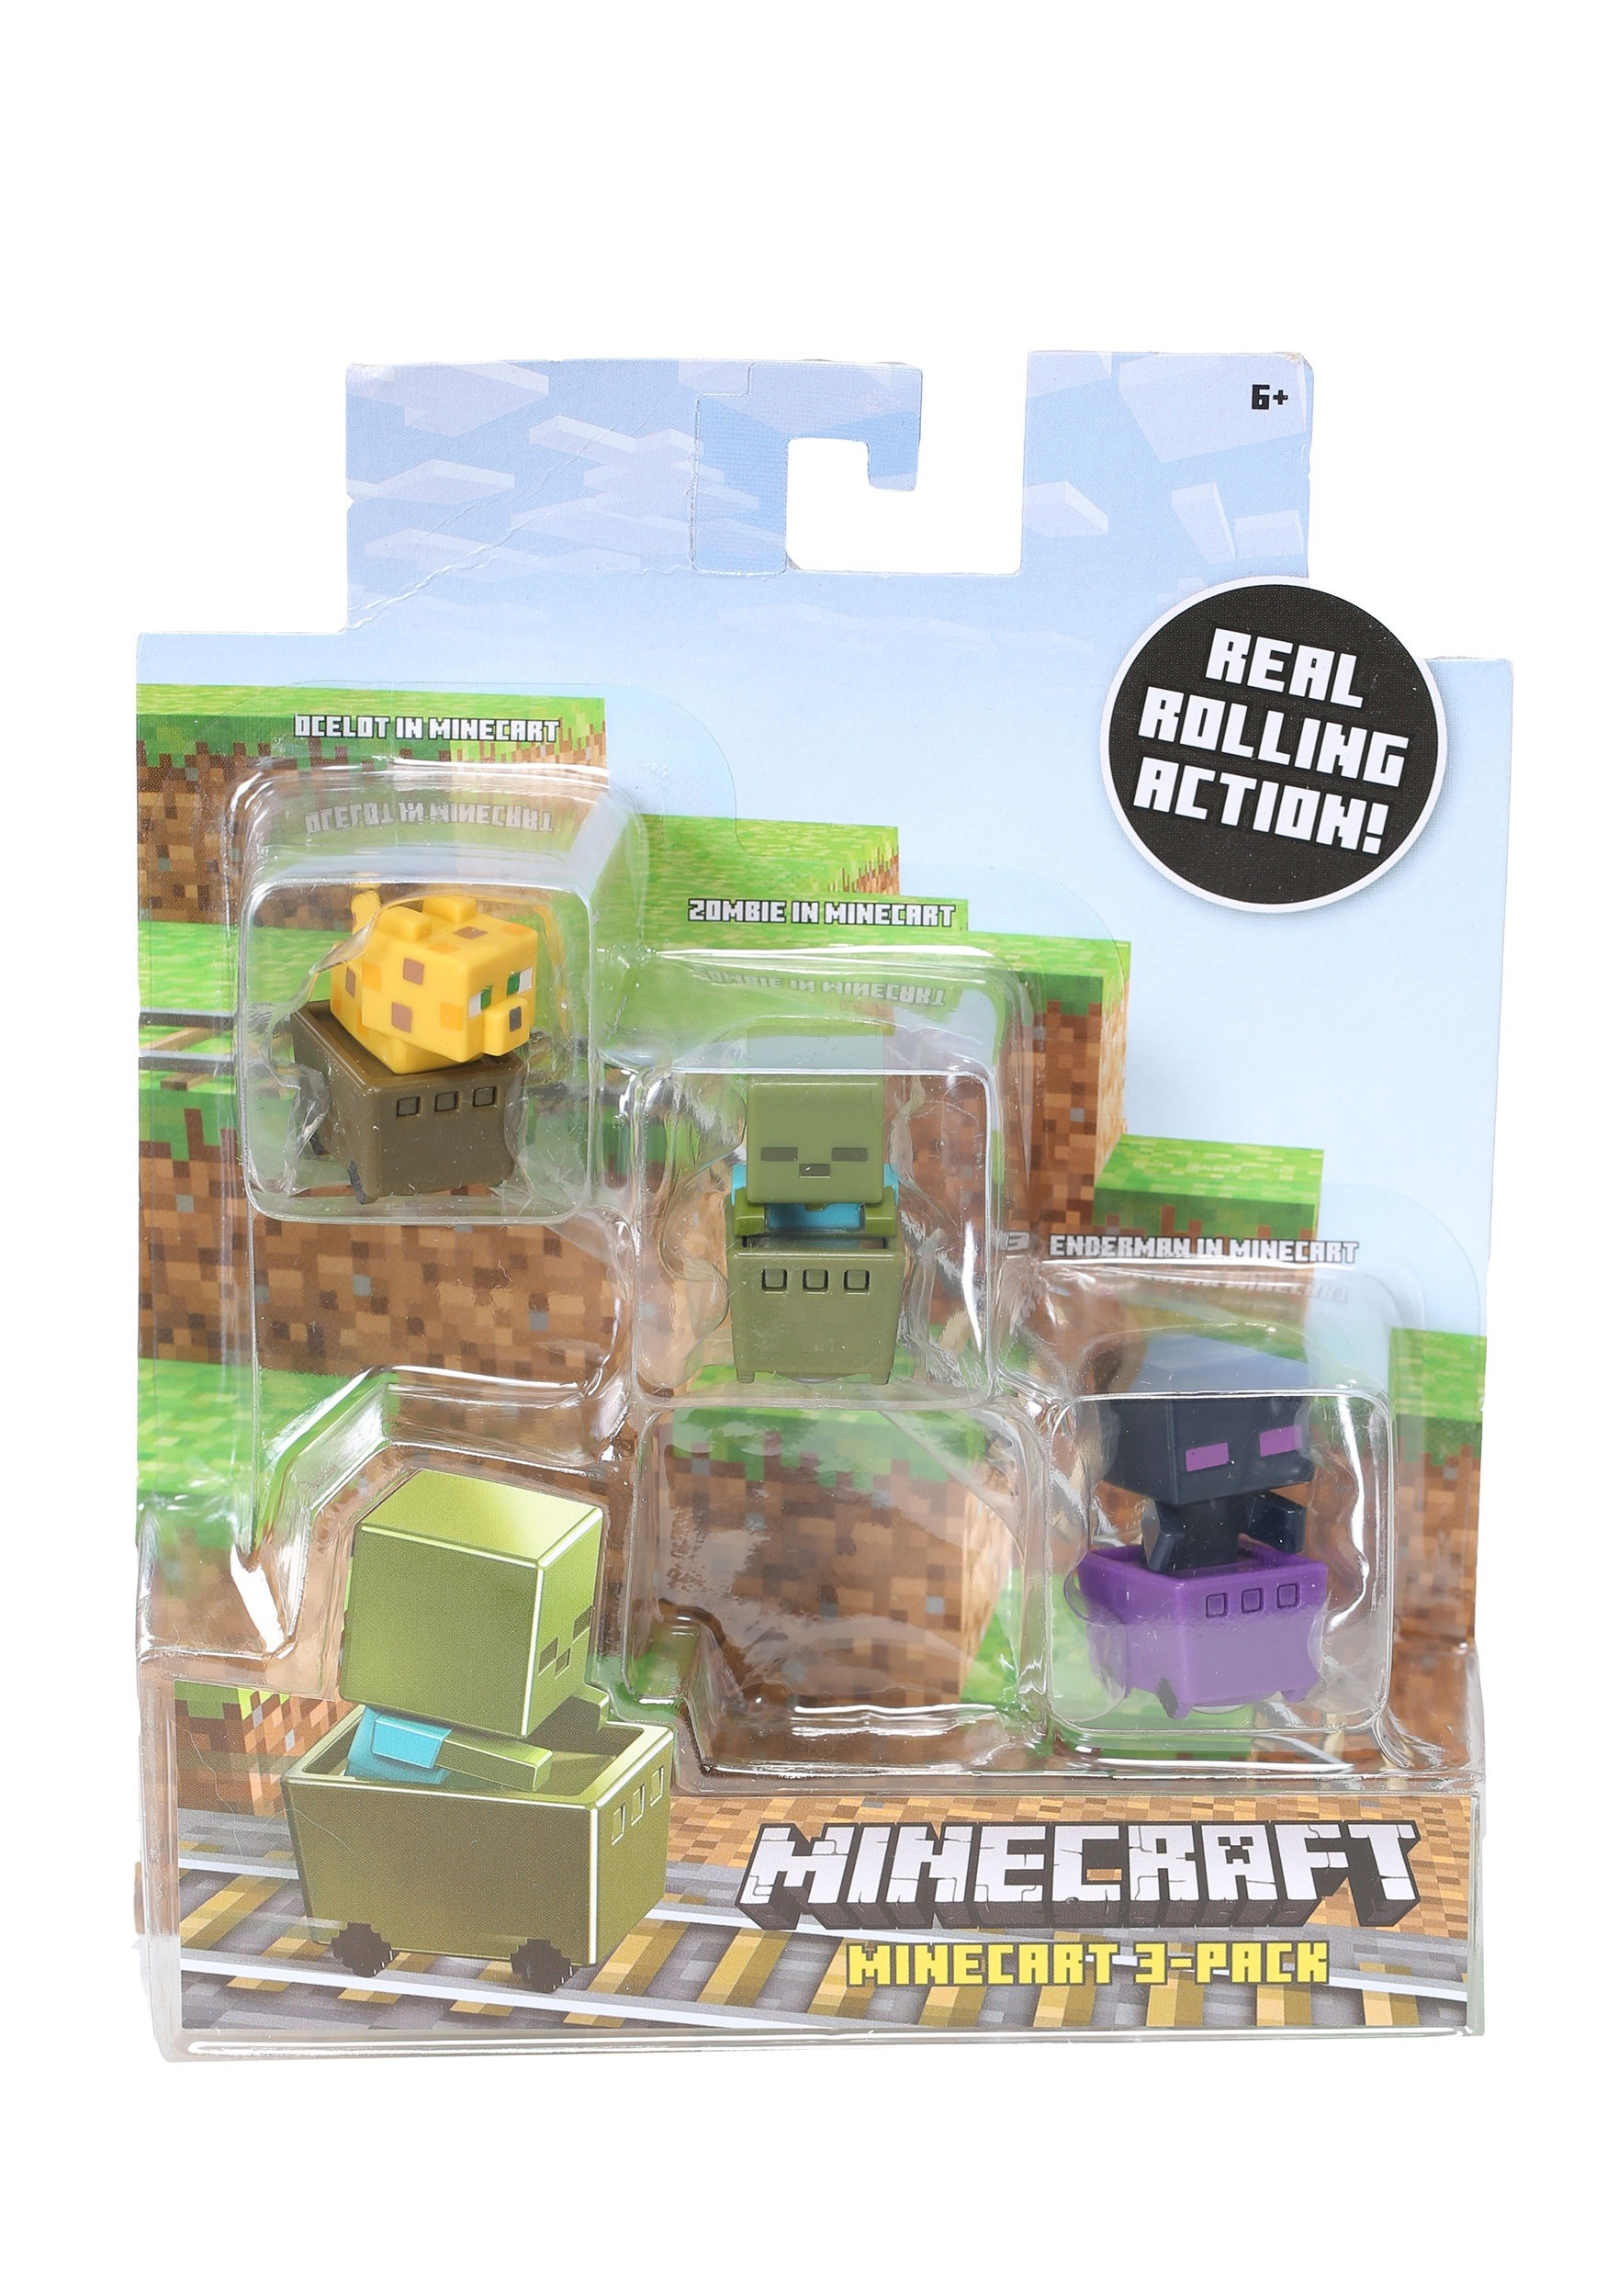 Minecraft Zombie Pigman, Diamond Steve, Mooshroom Figure Set MLFFK77